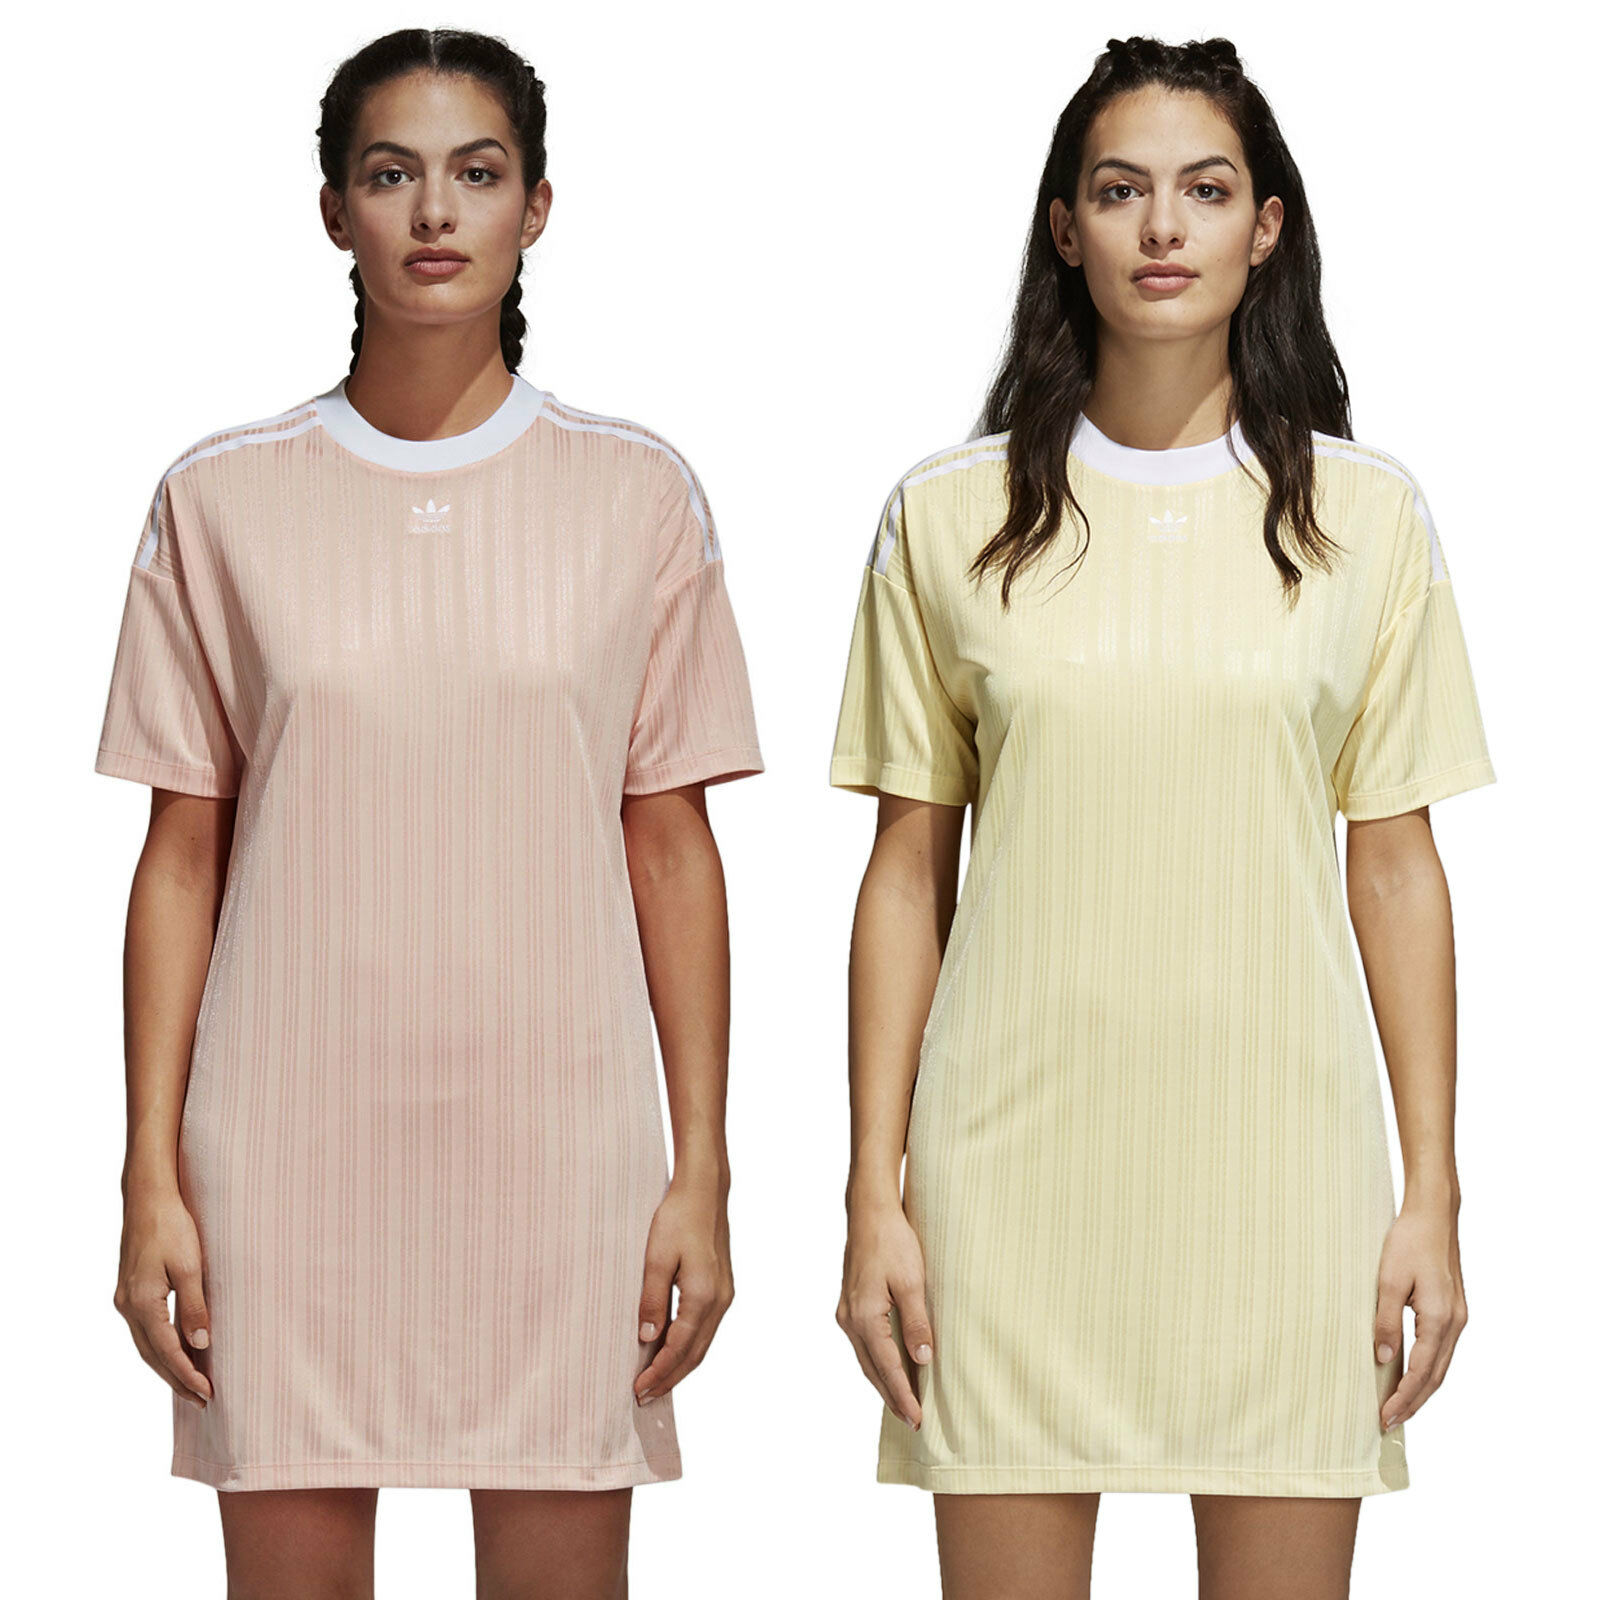 Adidas Originals Trefoil Dress Ladies Dress T-Shirt Mini Summer Dress